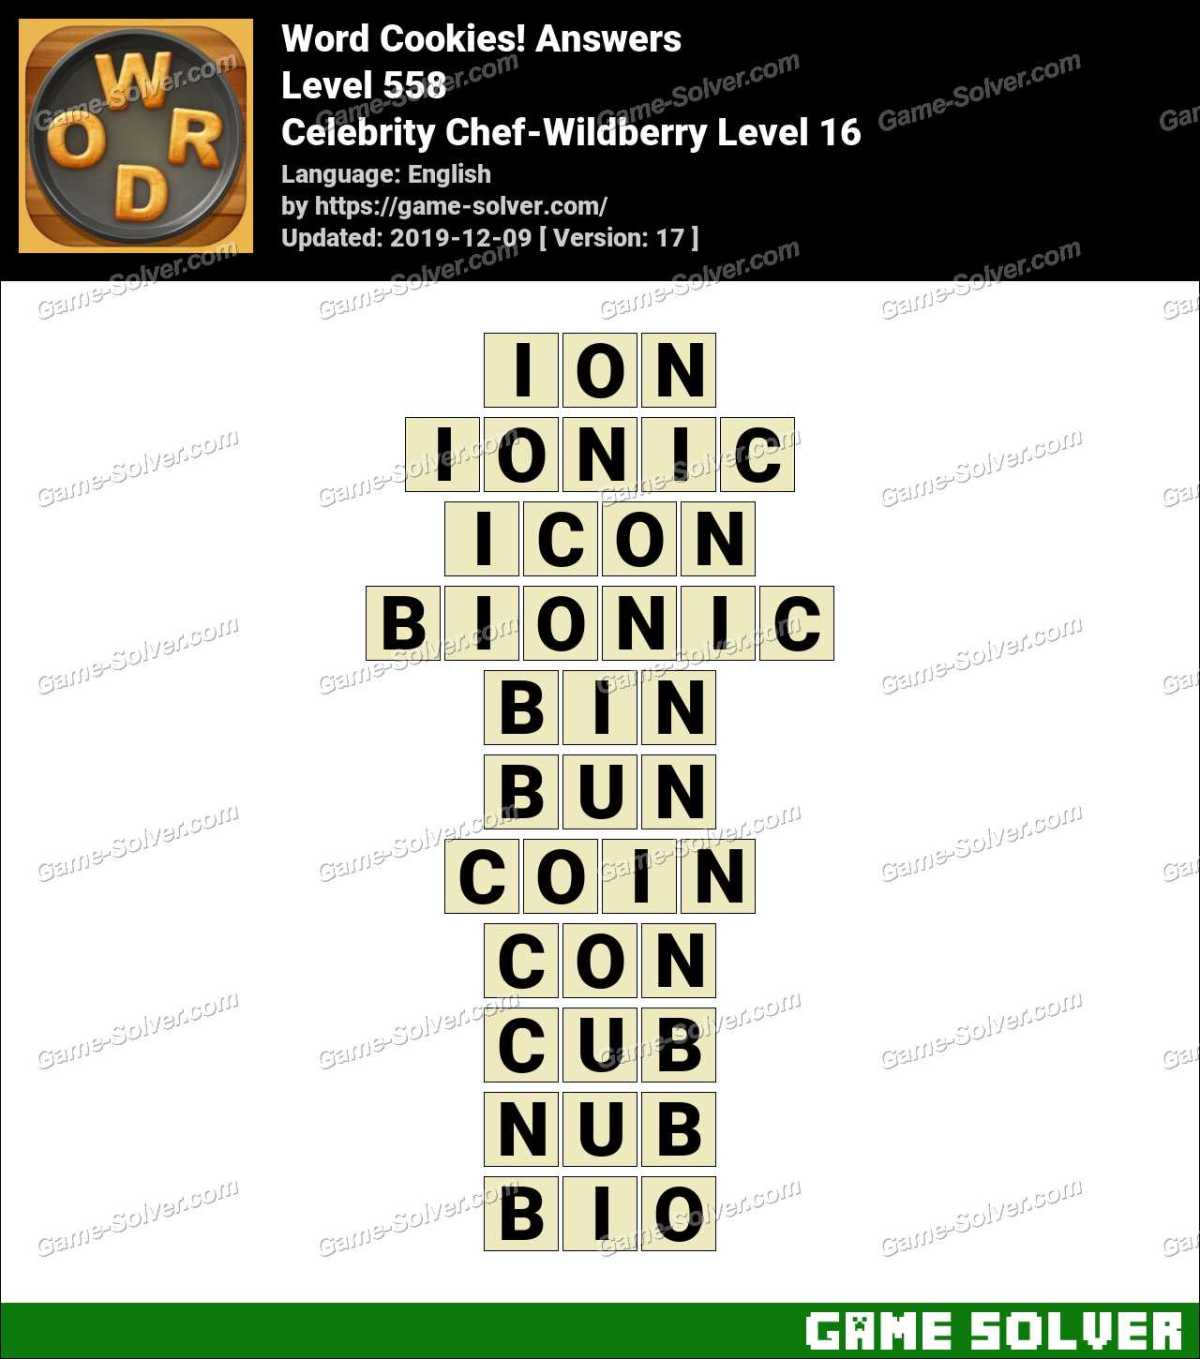 Word Cookies Celebrity Chef-Wildberry Level 16 Answers